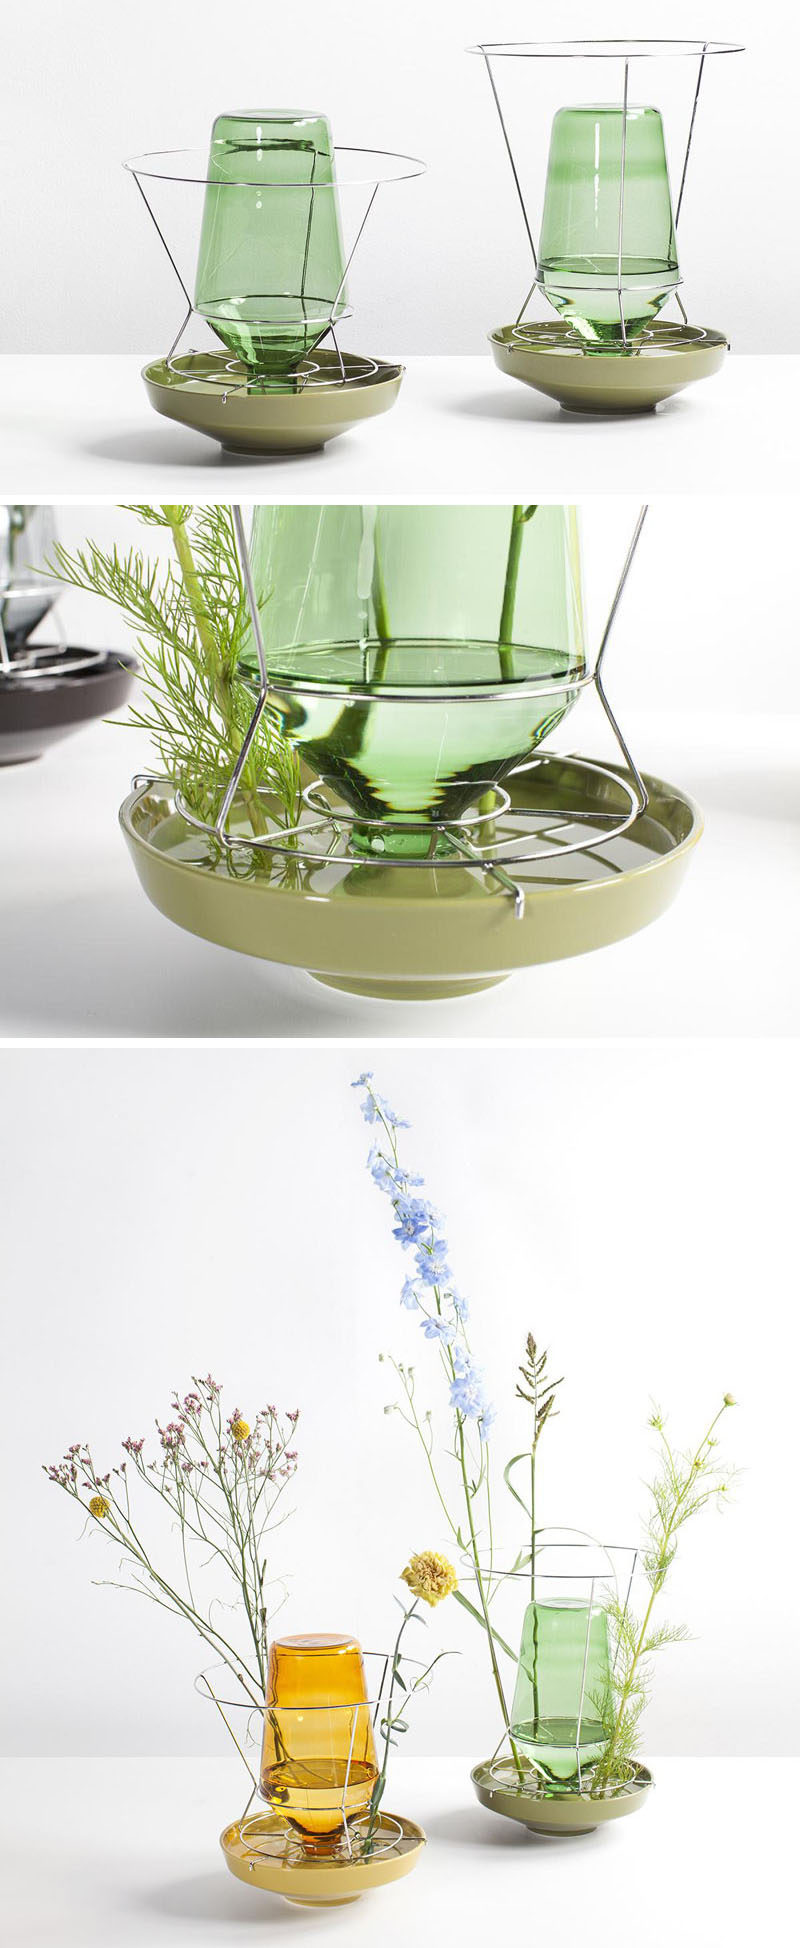 Rotterdam-based designer Chris Kabel has created a collection of contemporary glass, metal and ceramic vases that show off the stems of the flowers, instead of hiding them away.